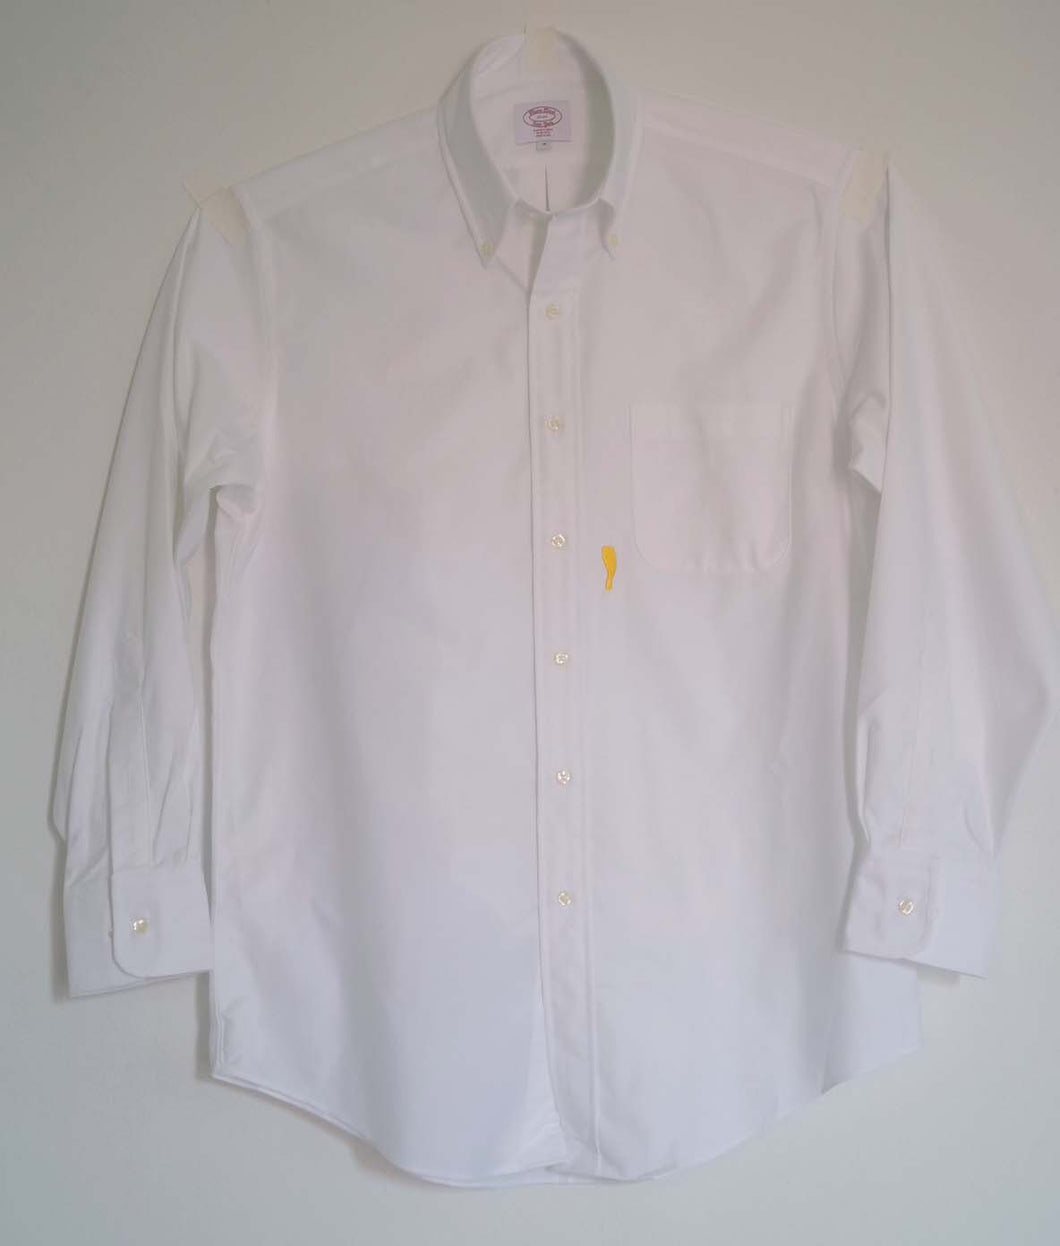 ACCIDENT MUSTARD STAIN WHITE